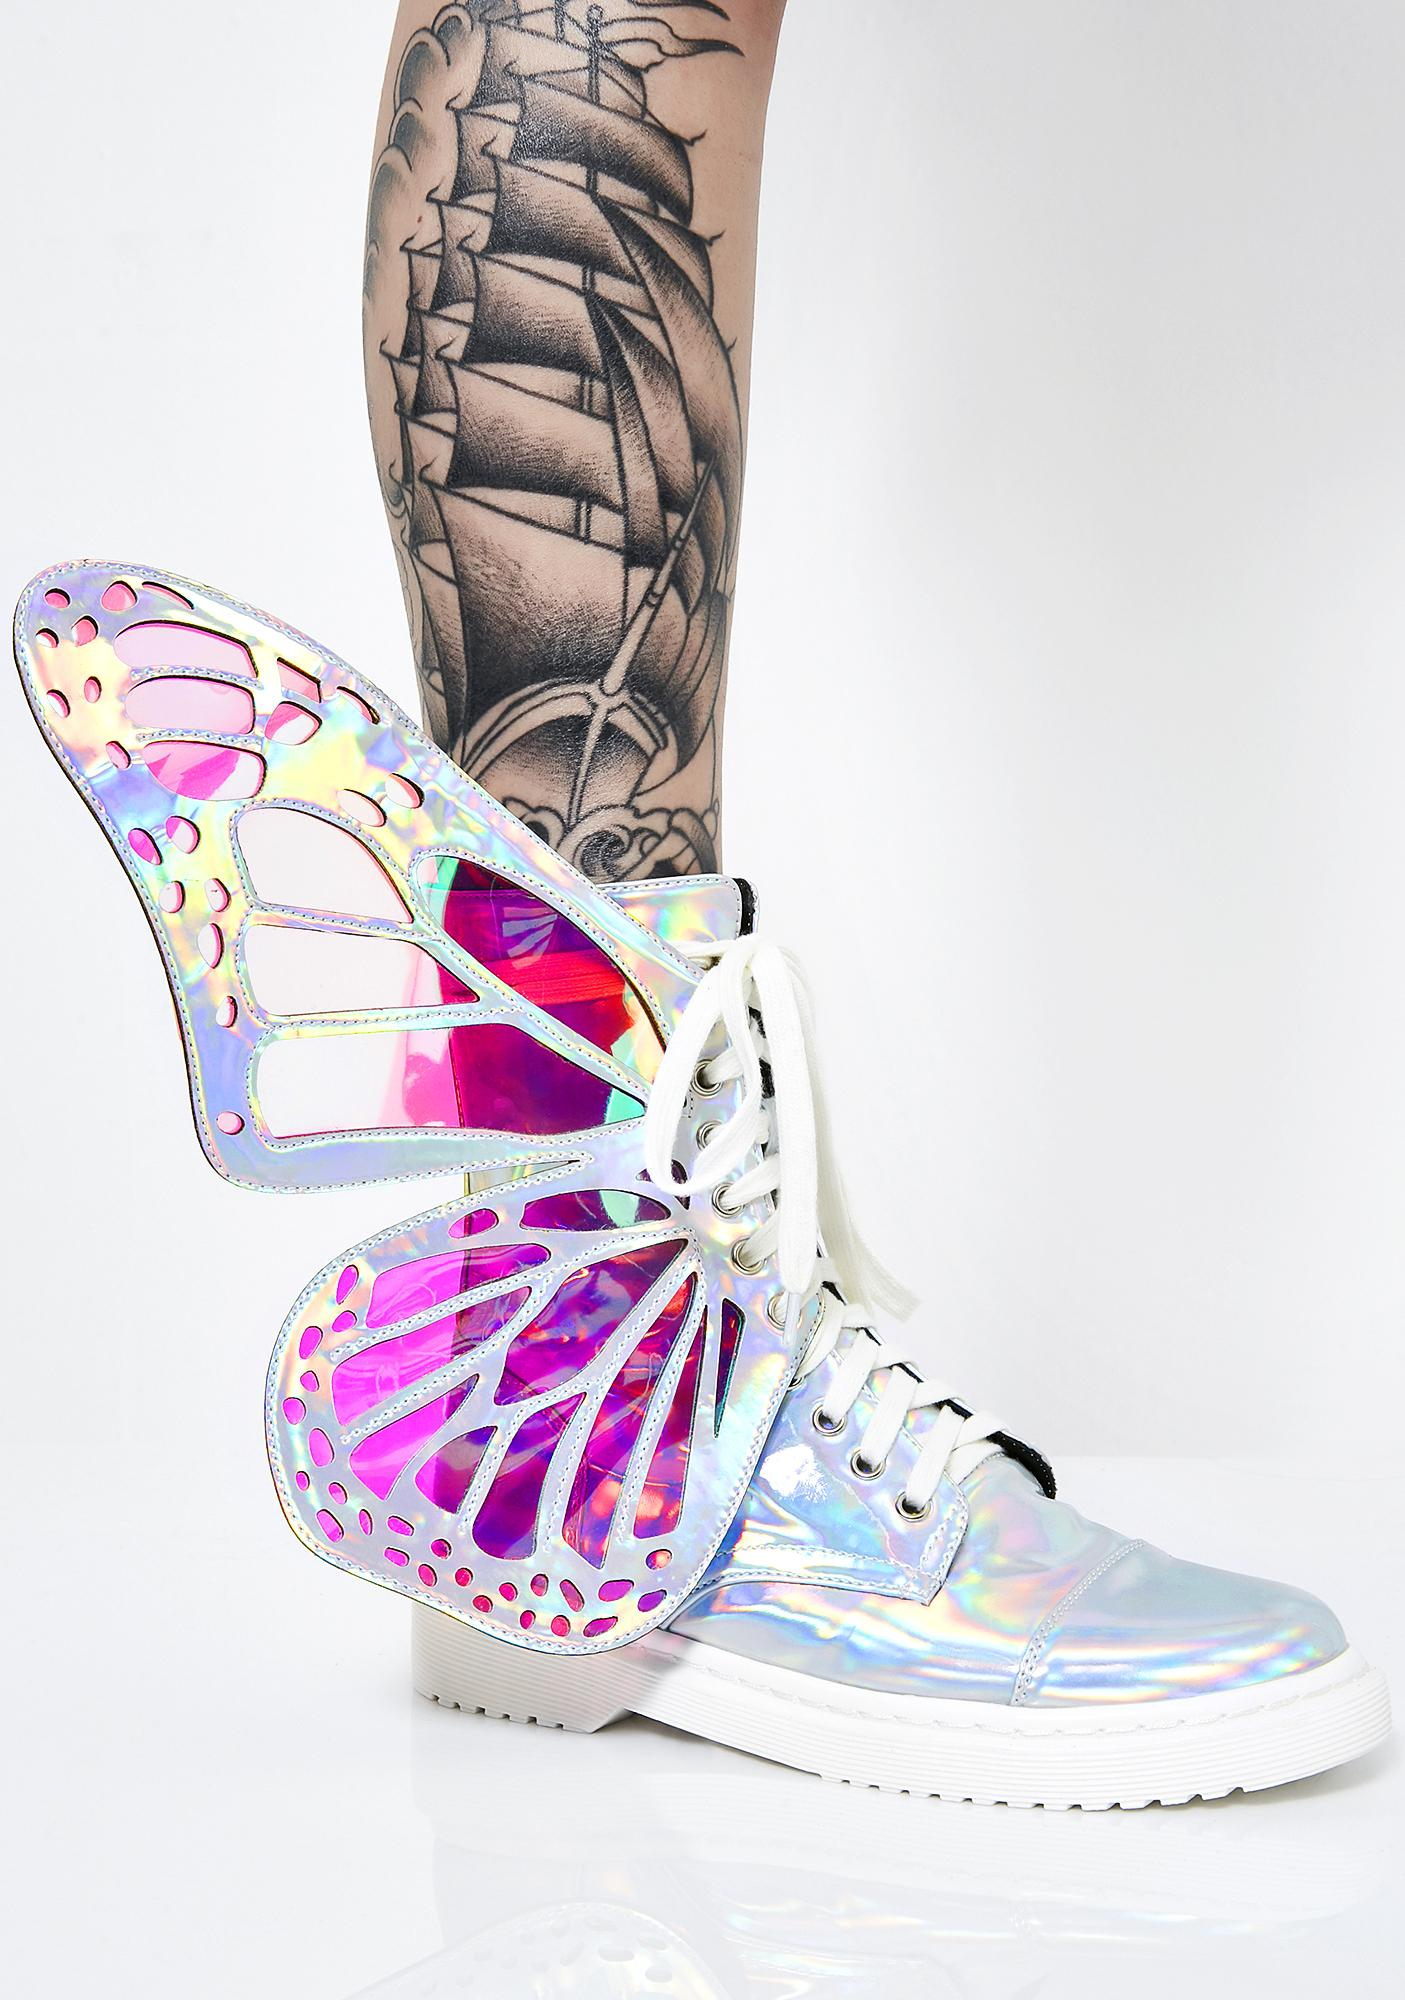 Club Exx HOLOGRAPHIC METAMORPHIC BOOTS